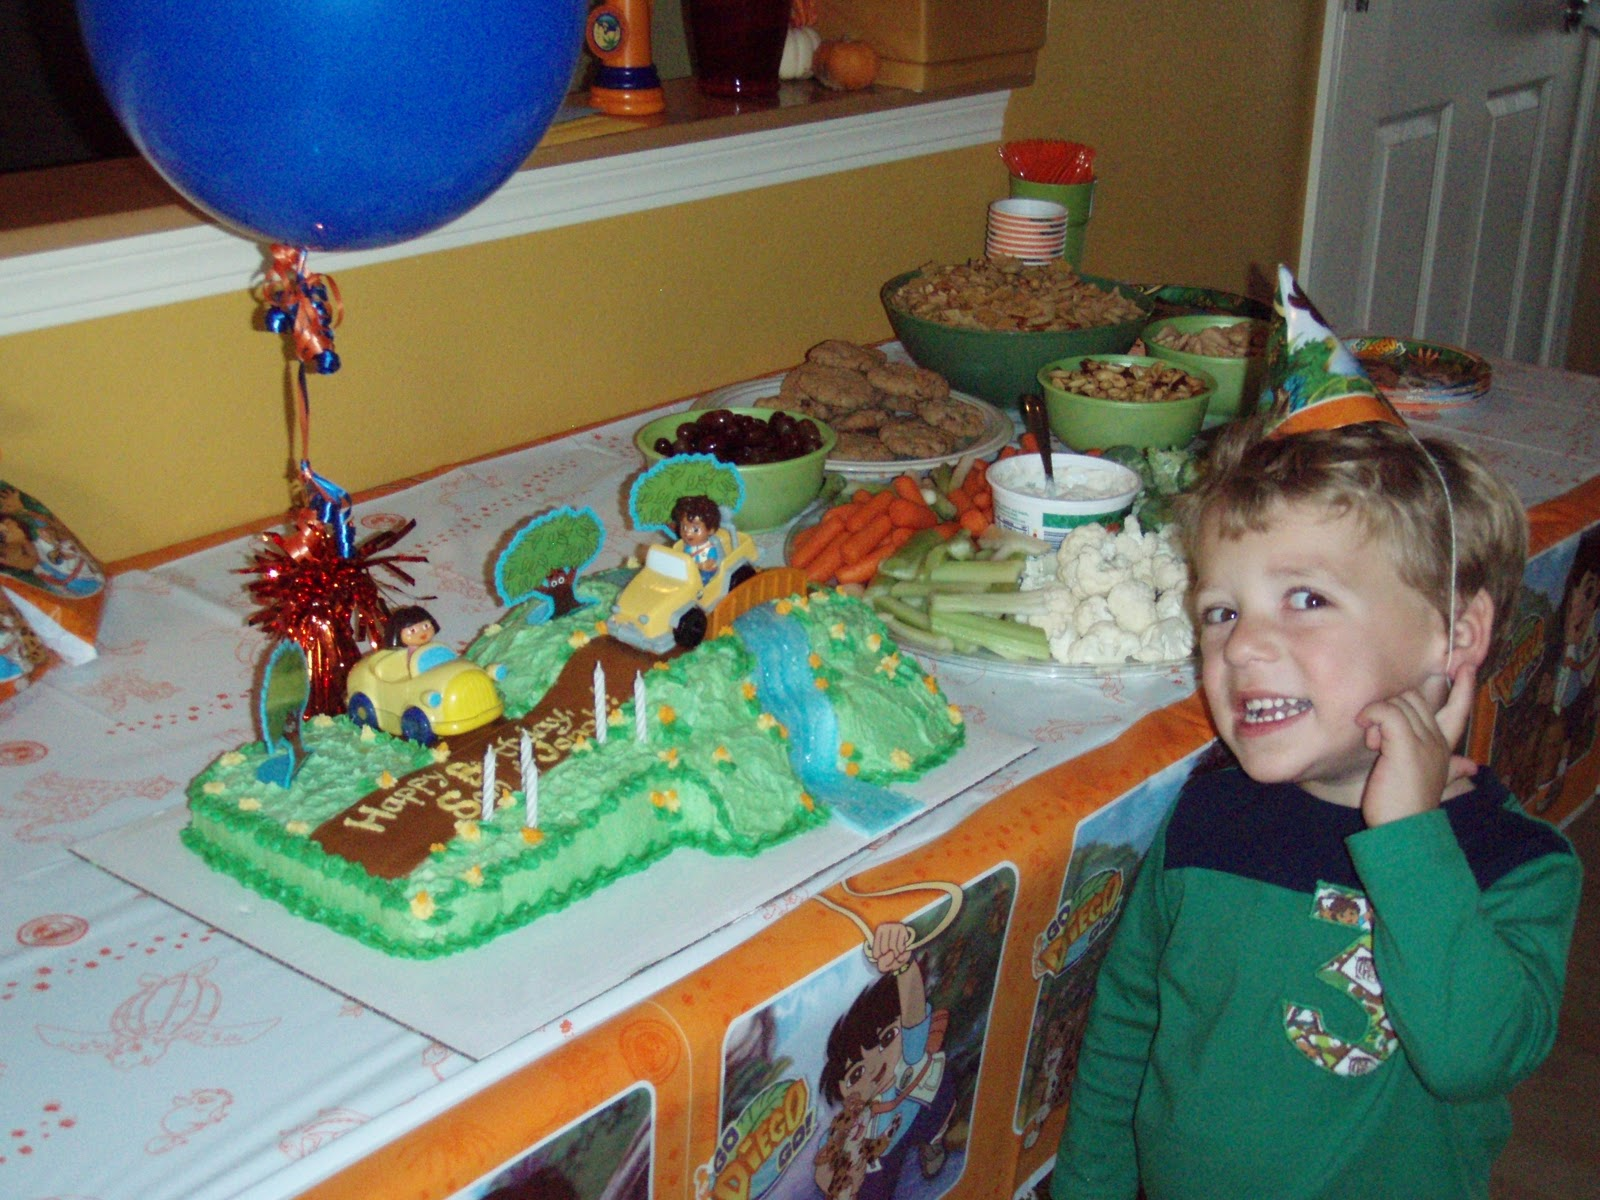 Go Diego Go Made By A Brunnette - Go diego go birthday cake